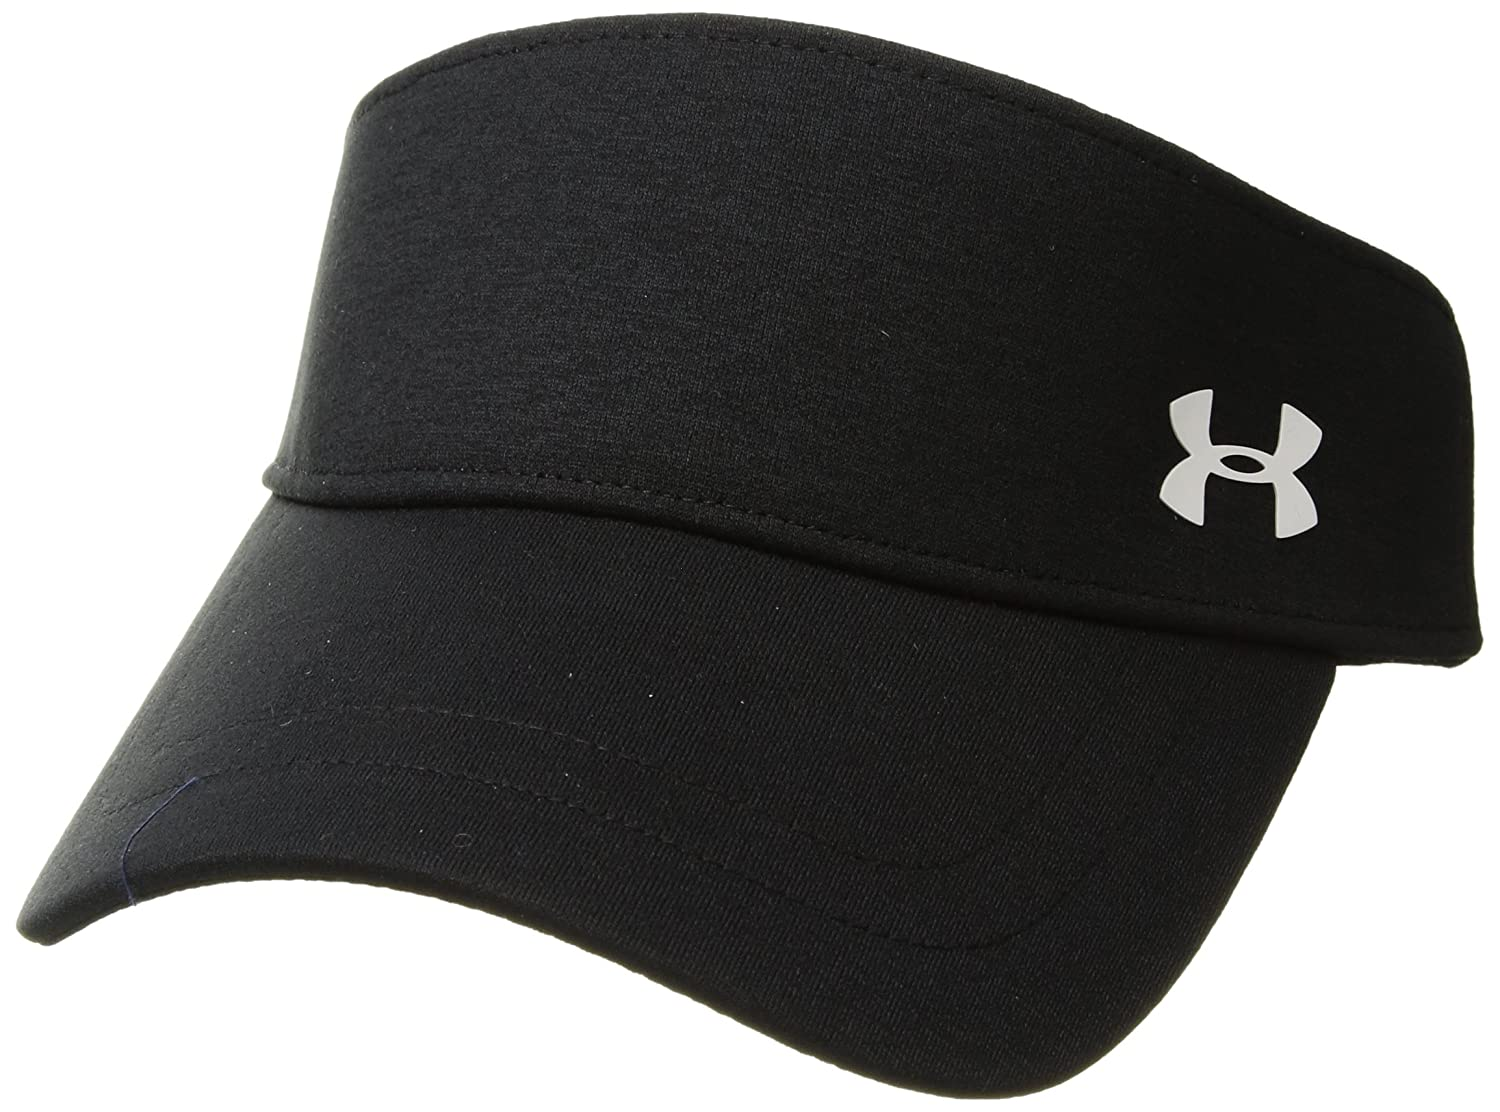 934d1ac1b50e9 Amazon.com  Under Armour Women s Renegade Visor